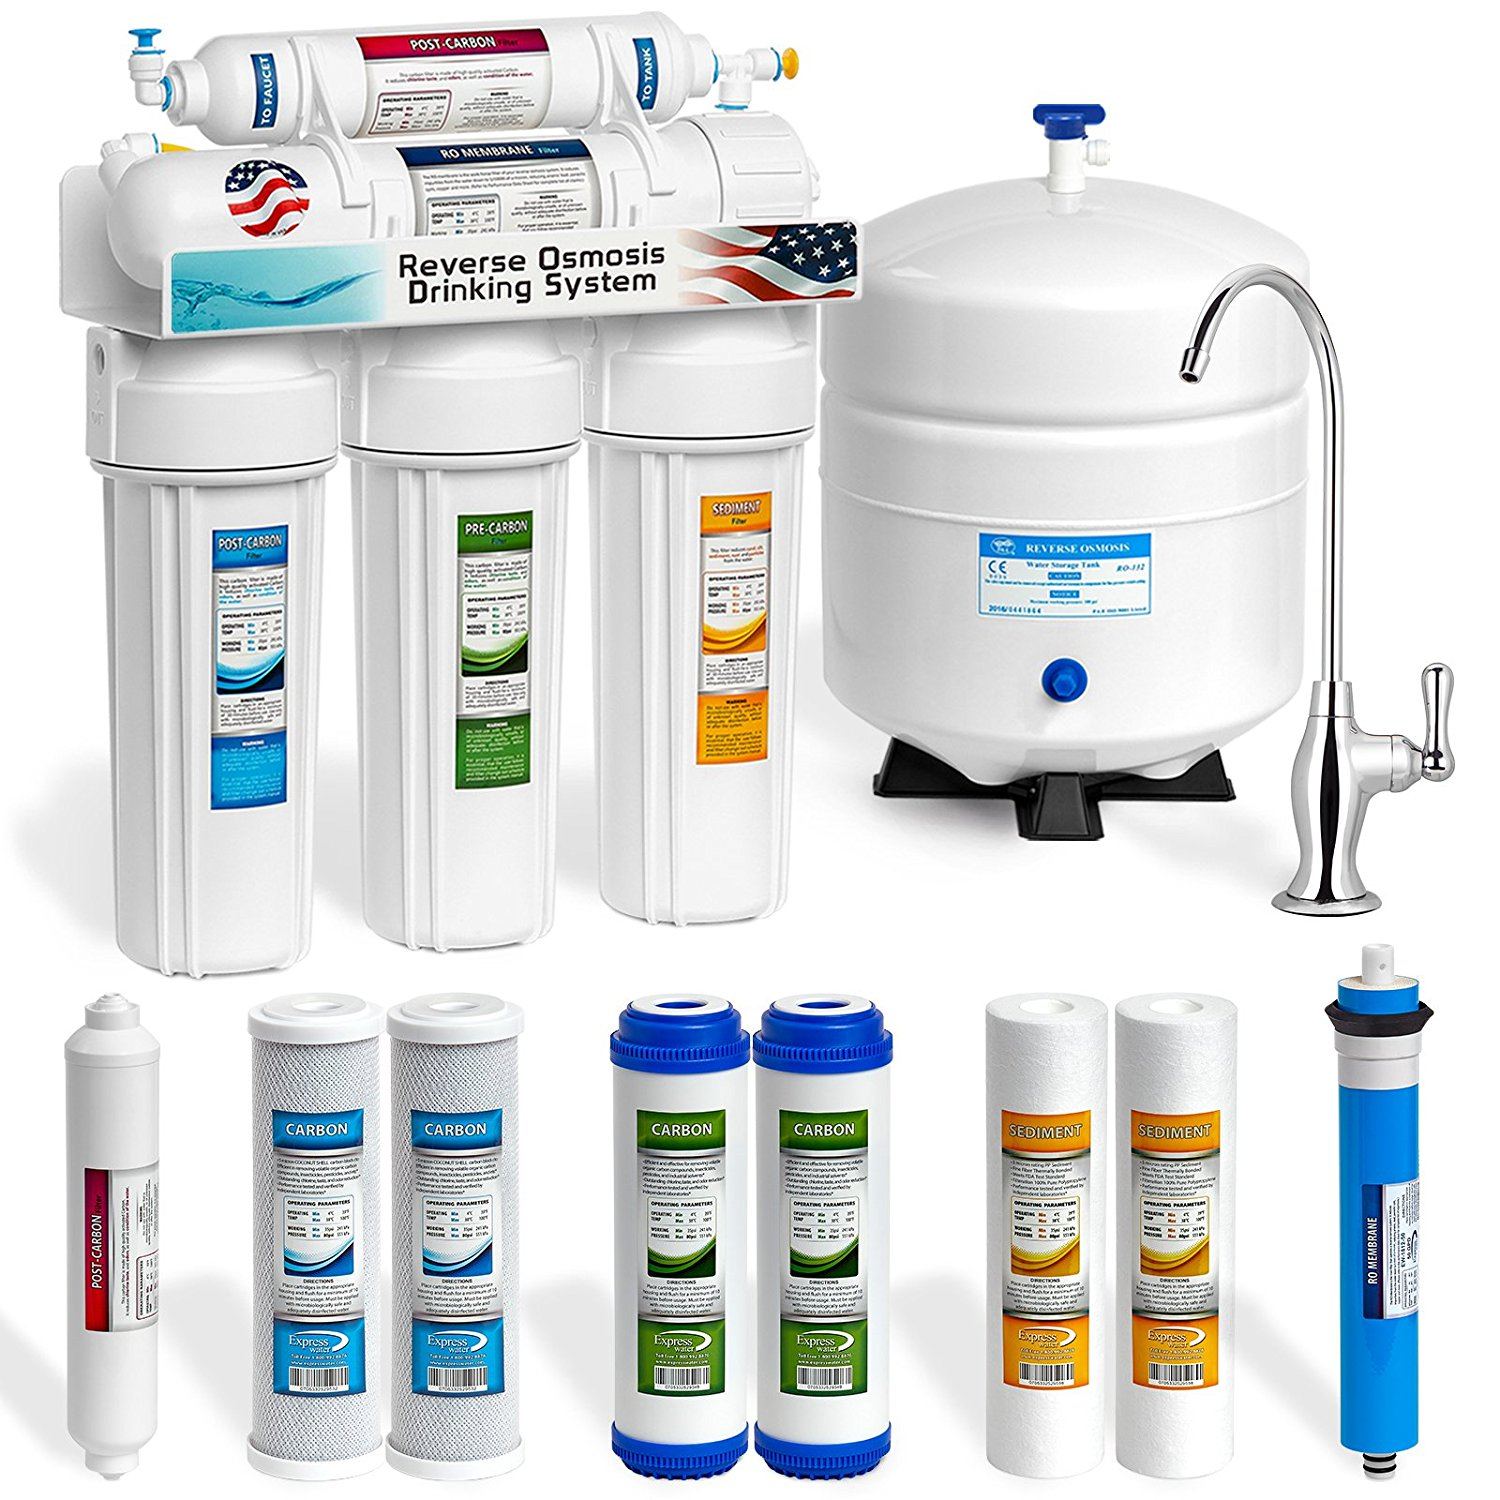 Reverse Osmosis Drinking Water System Product Review Express Water 5 Stage Reverse Osmosis System